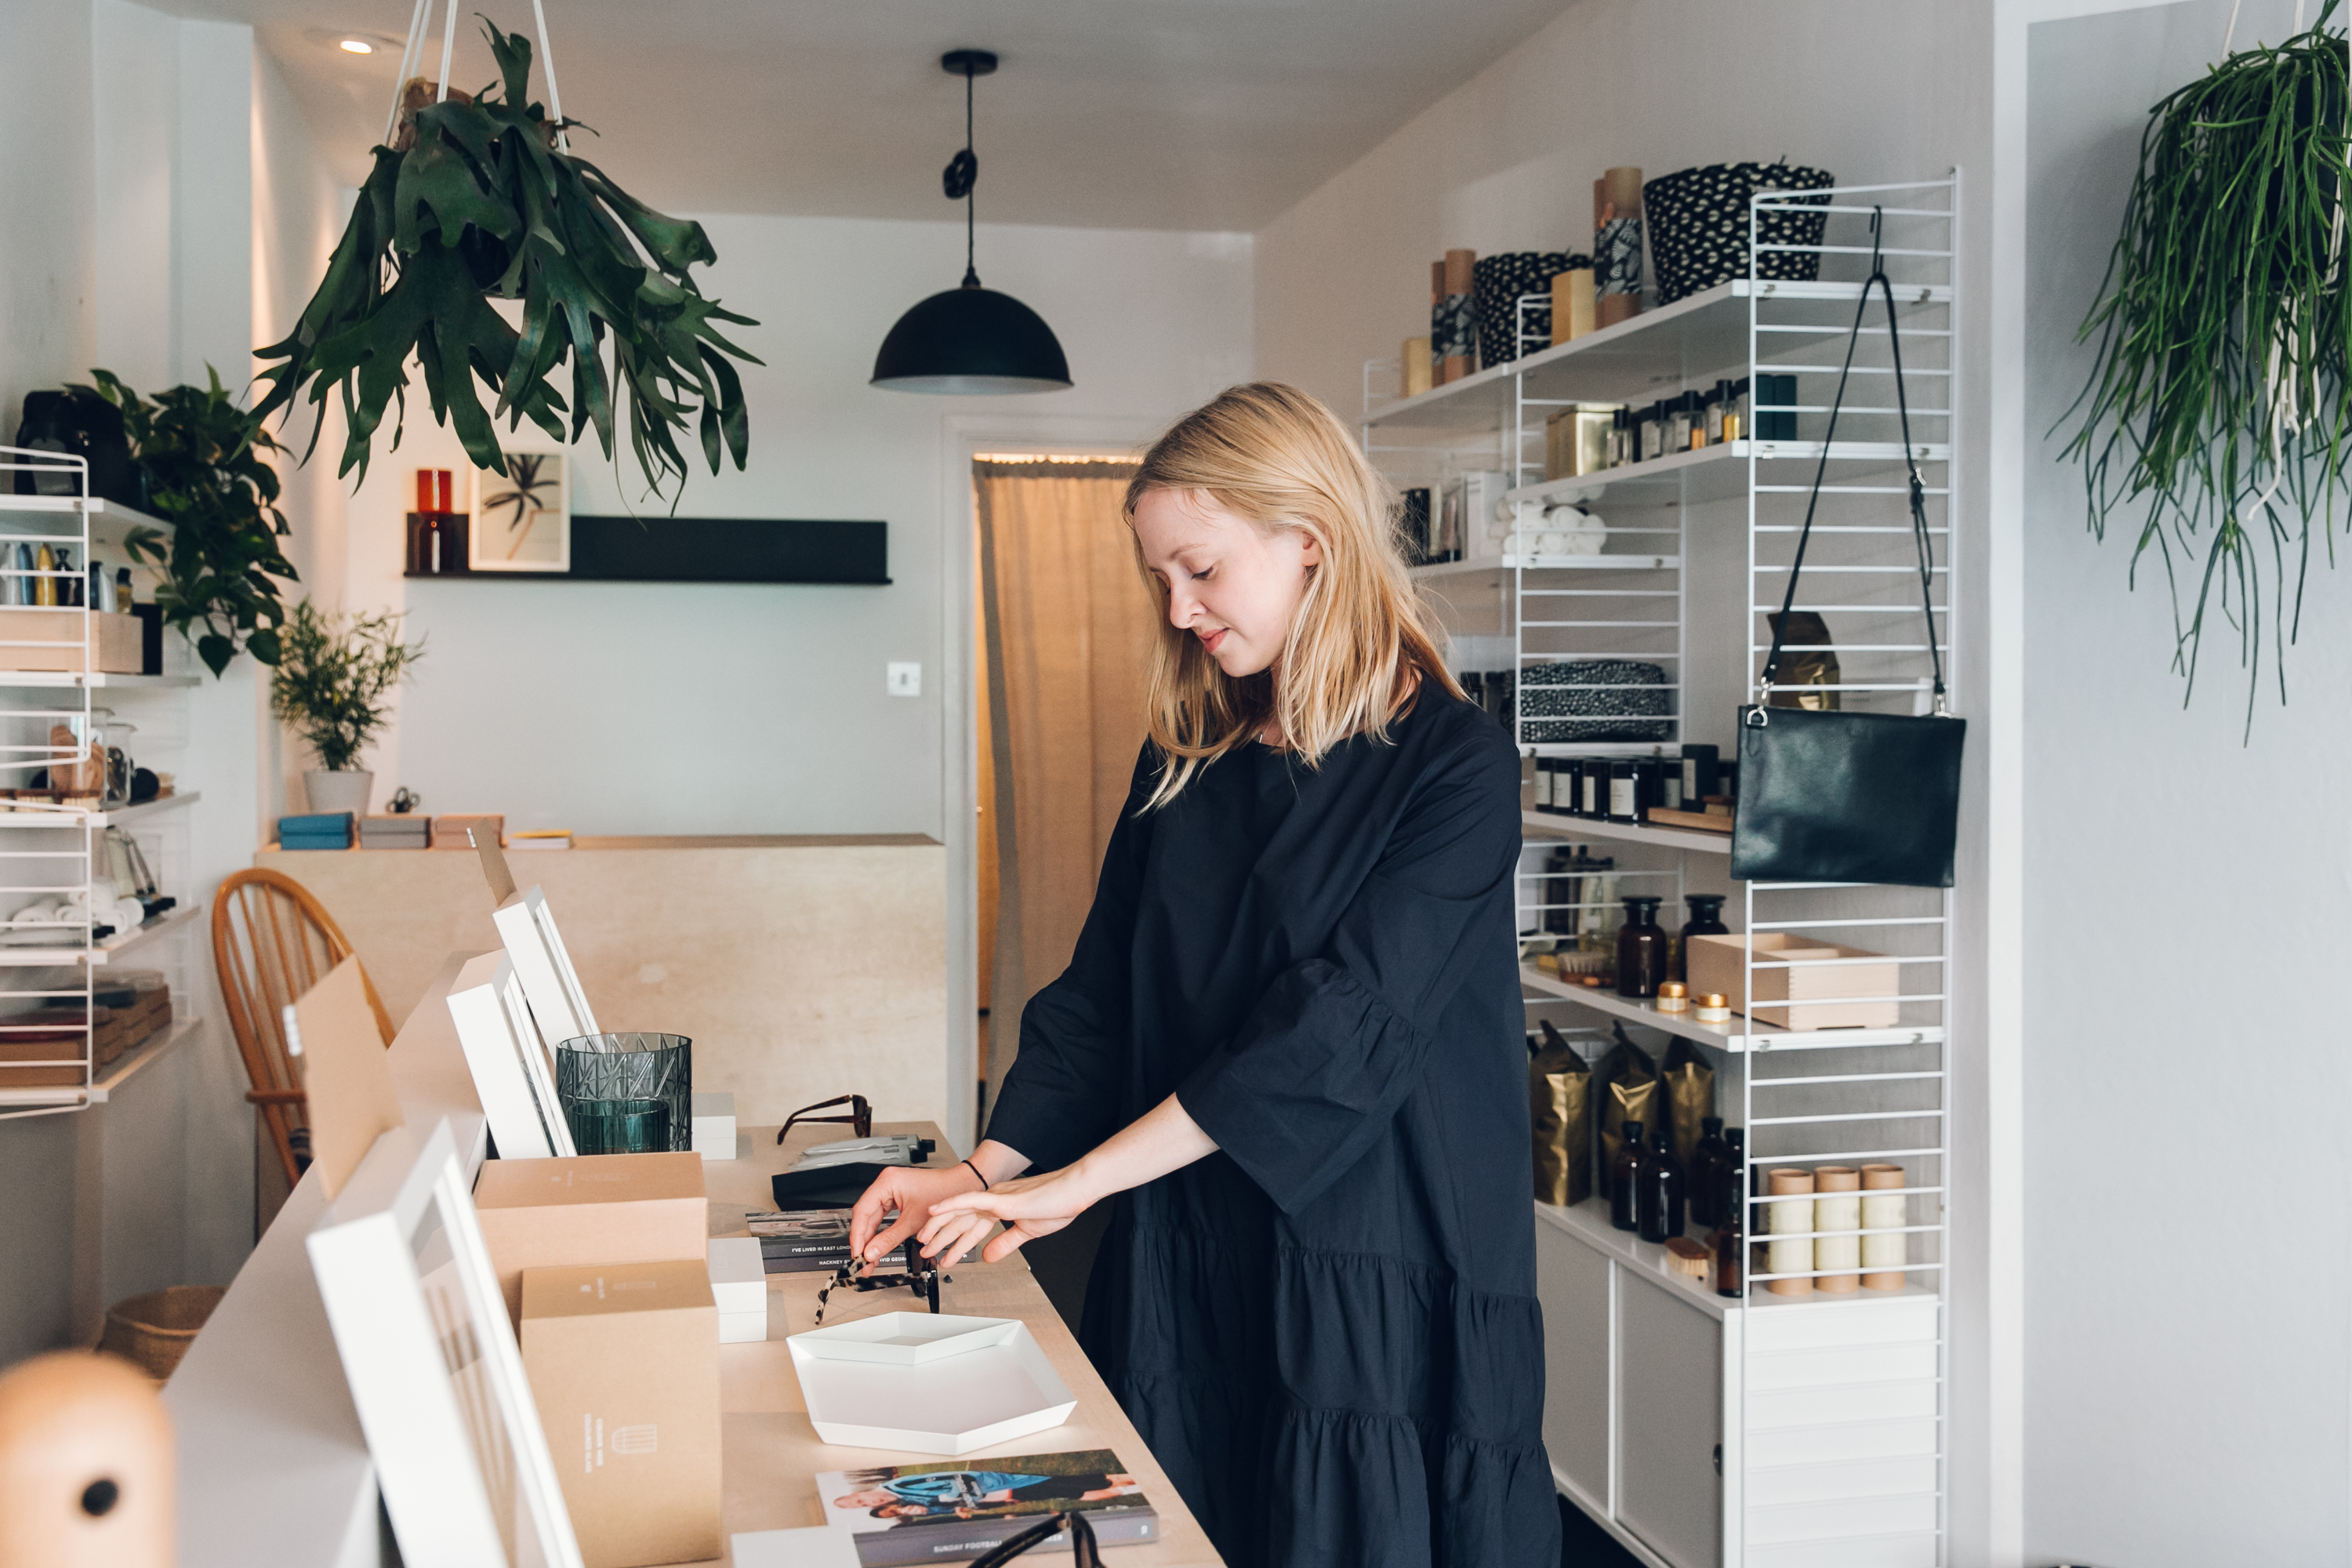 Shop assistant arranging objects in an independent shop